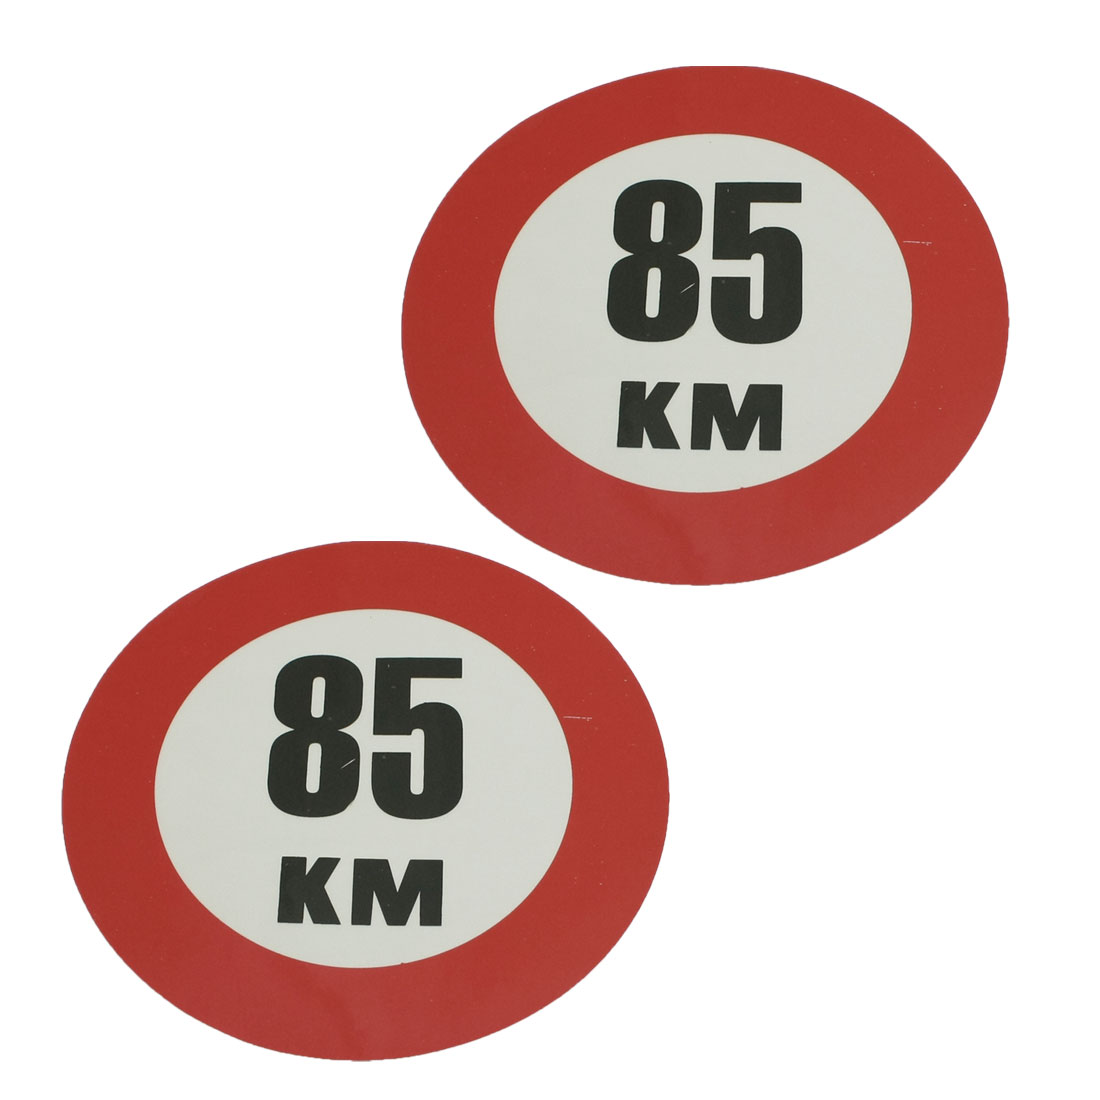 2 Pcs Round Road Speed Limit Sign 85 KM Truck Car Stickers Decals